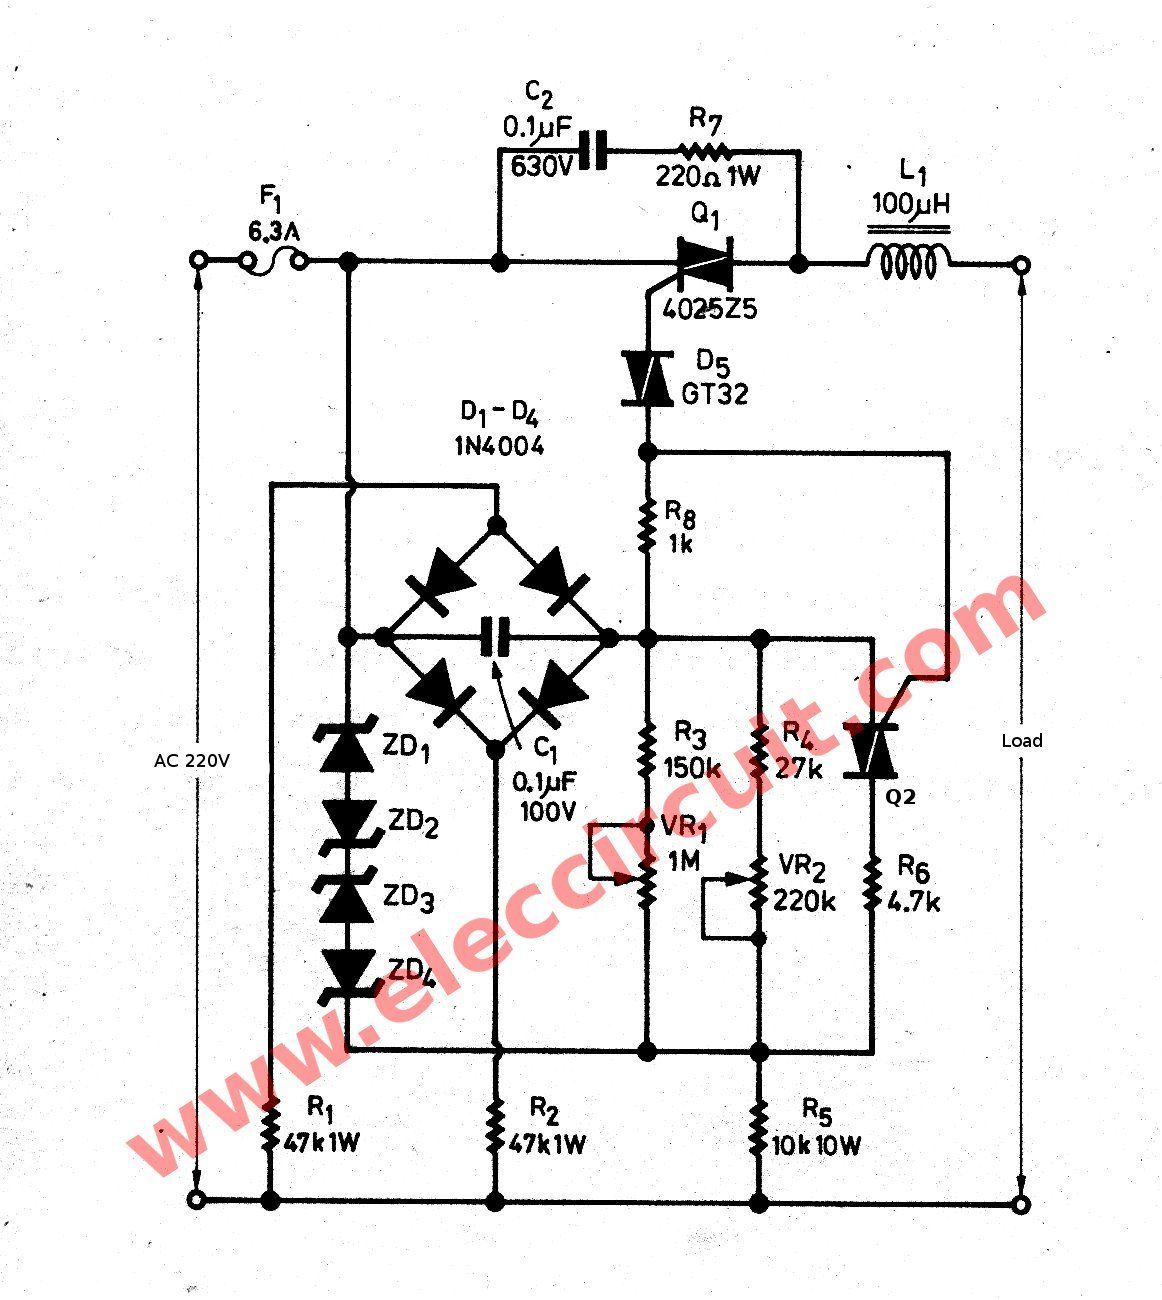 hight resolution of 3000 watts dimmer for inductor load sch my pinterest free circuit diagrams 4u 1w led driver circuit diagram